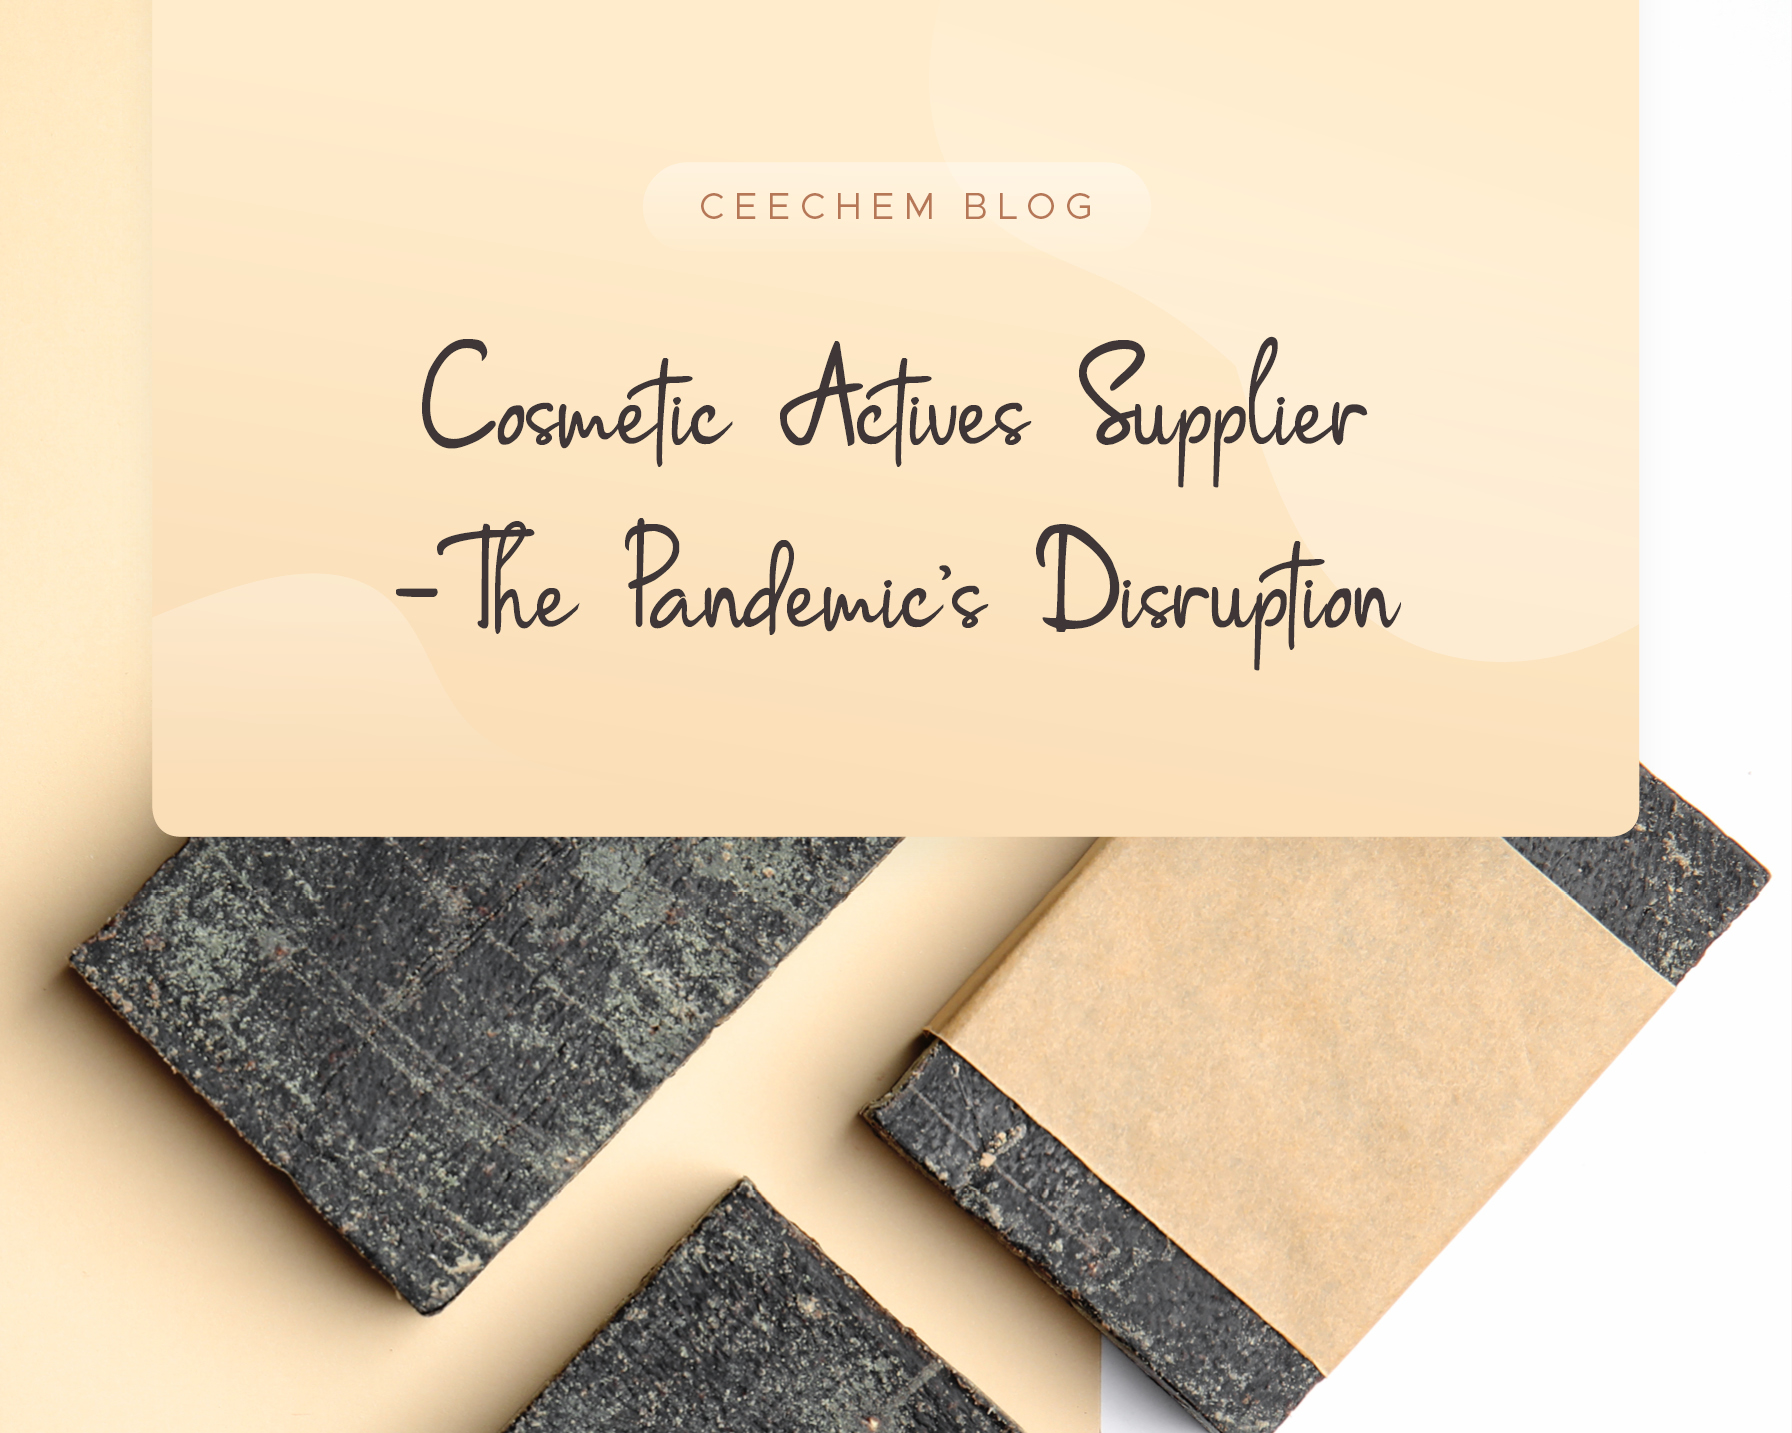 Cosmetic Actives Supplier -The Pandemic's Disruption